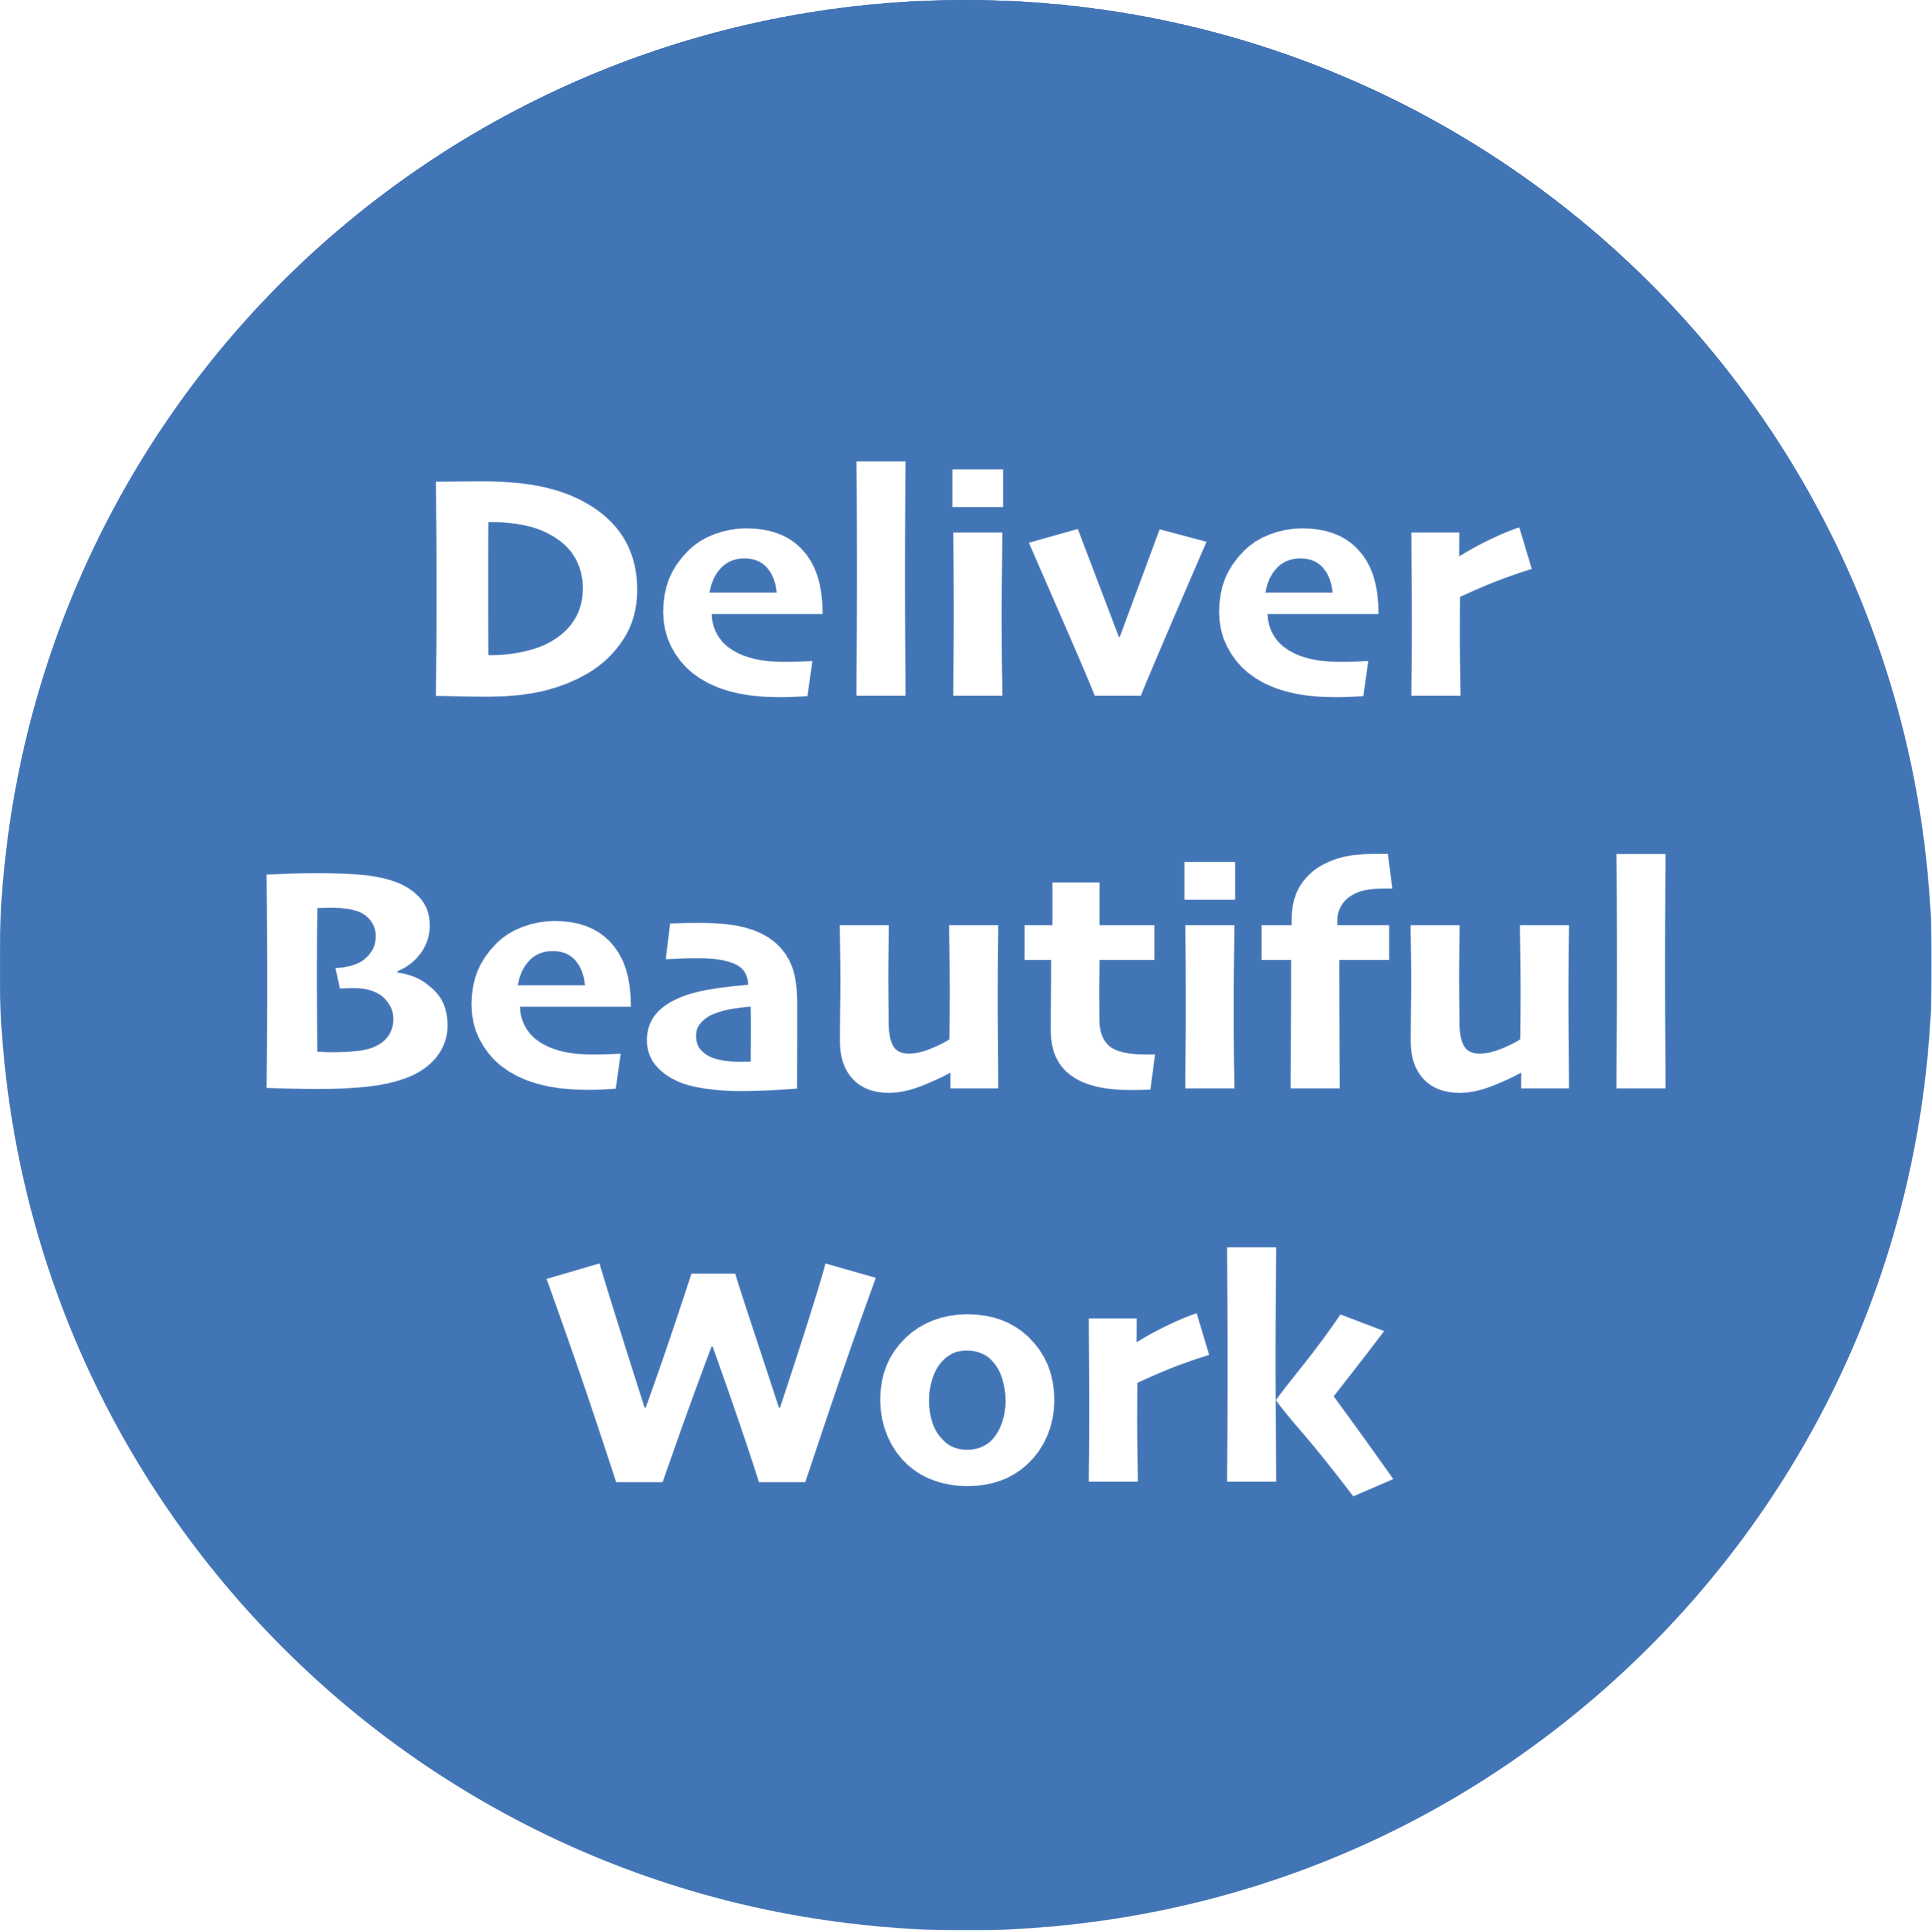 Deliver Beautiful Work